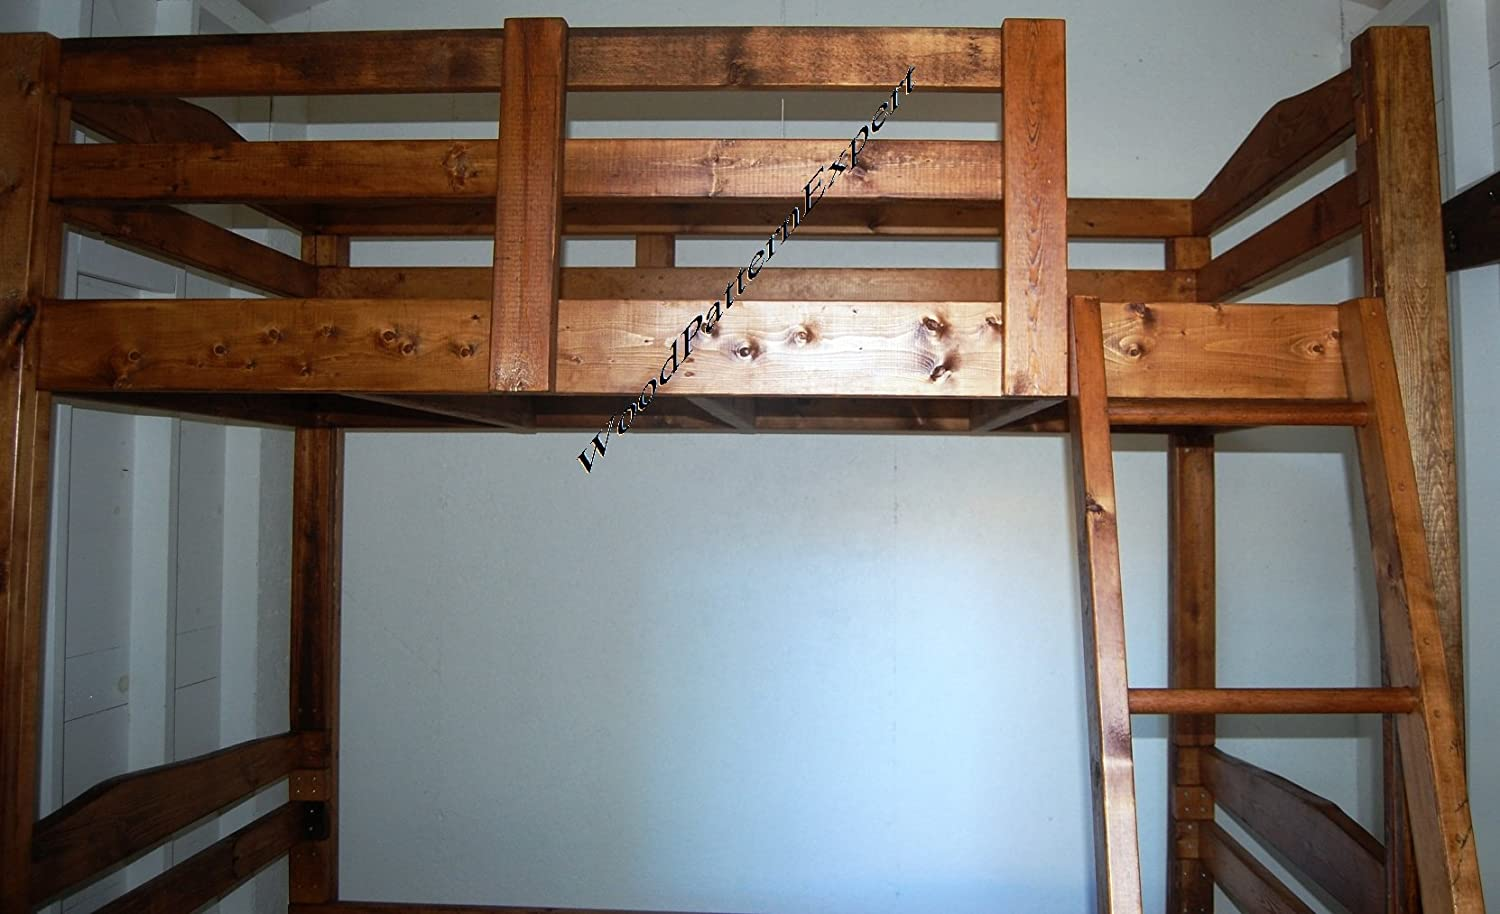 amazoncom bunk bed paper plans so easy beginners look like experts build your own king over queen over full over twin using this step by step diy patterns